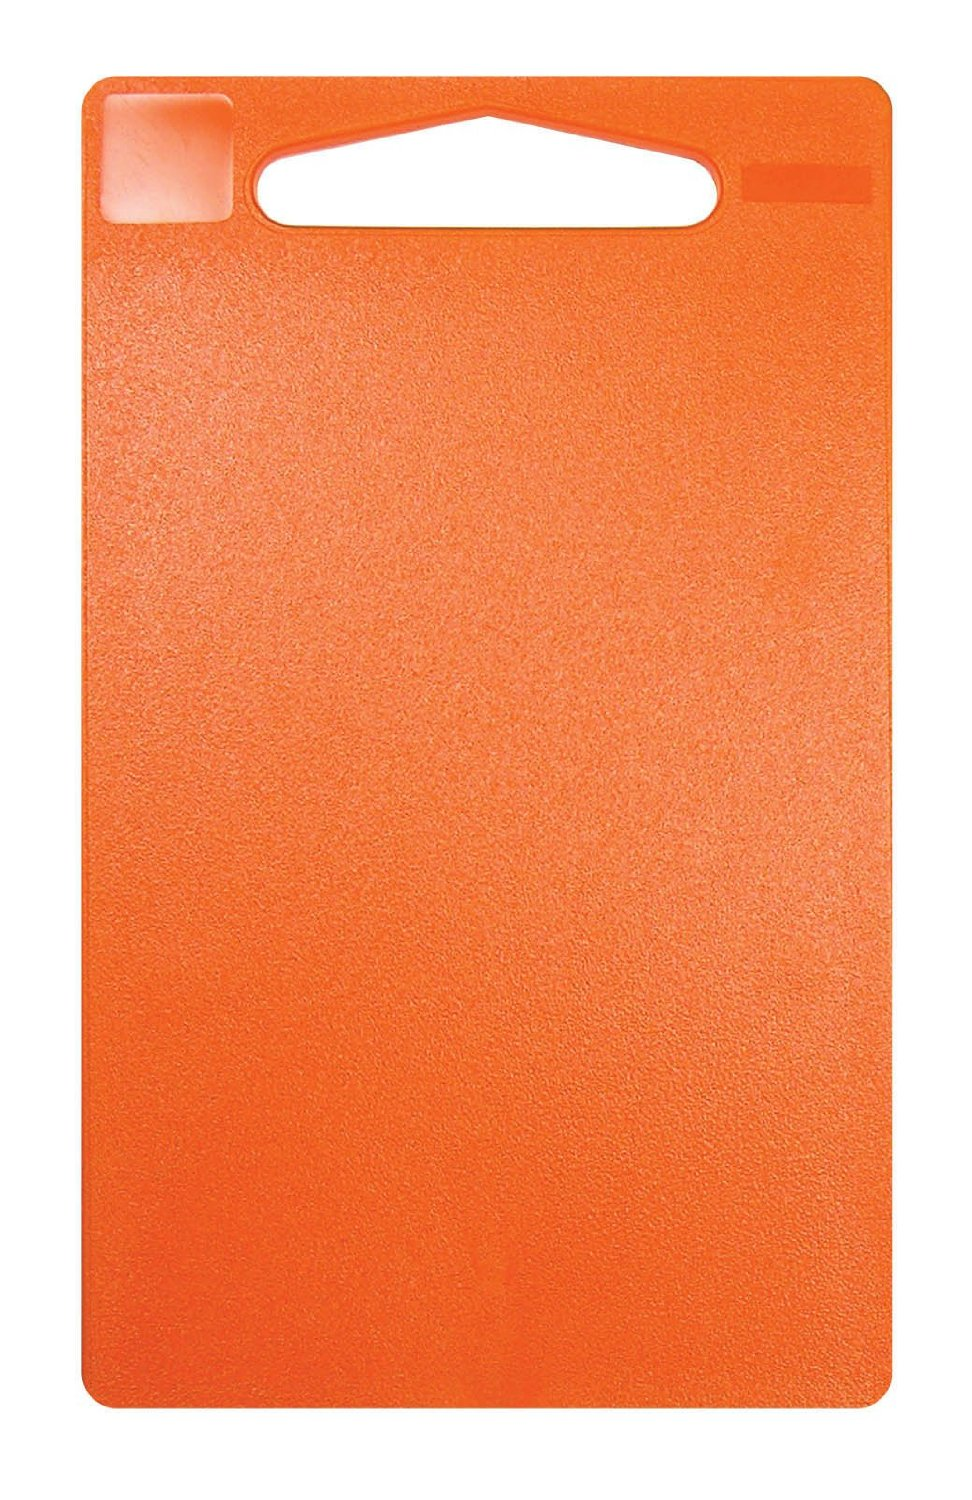 Anita Cutting Board Small Orange